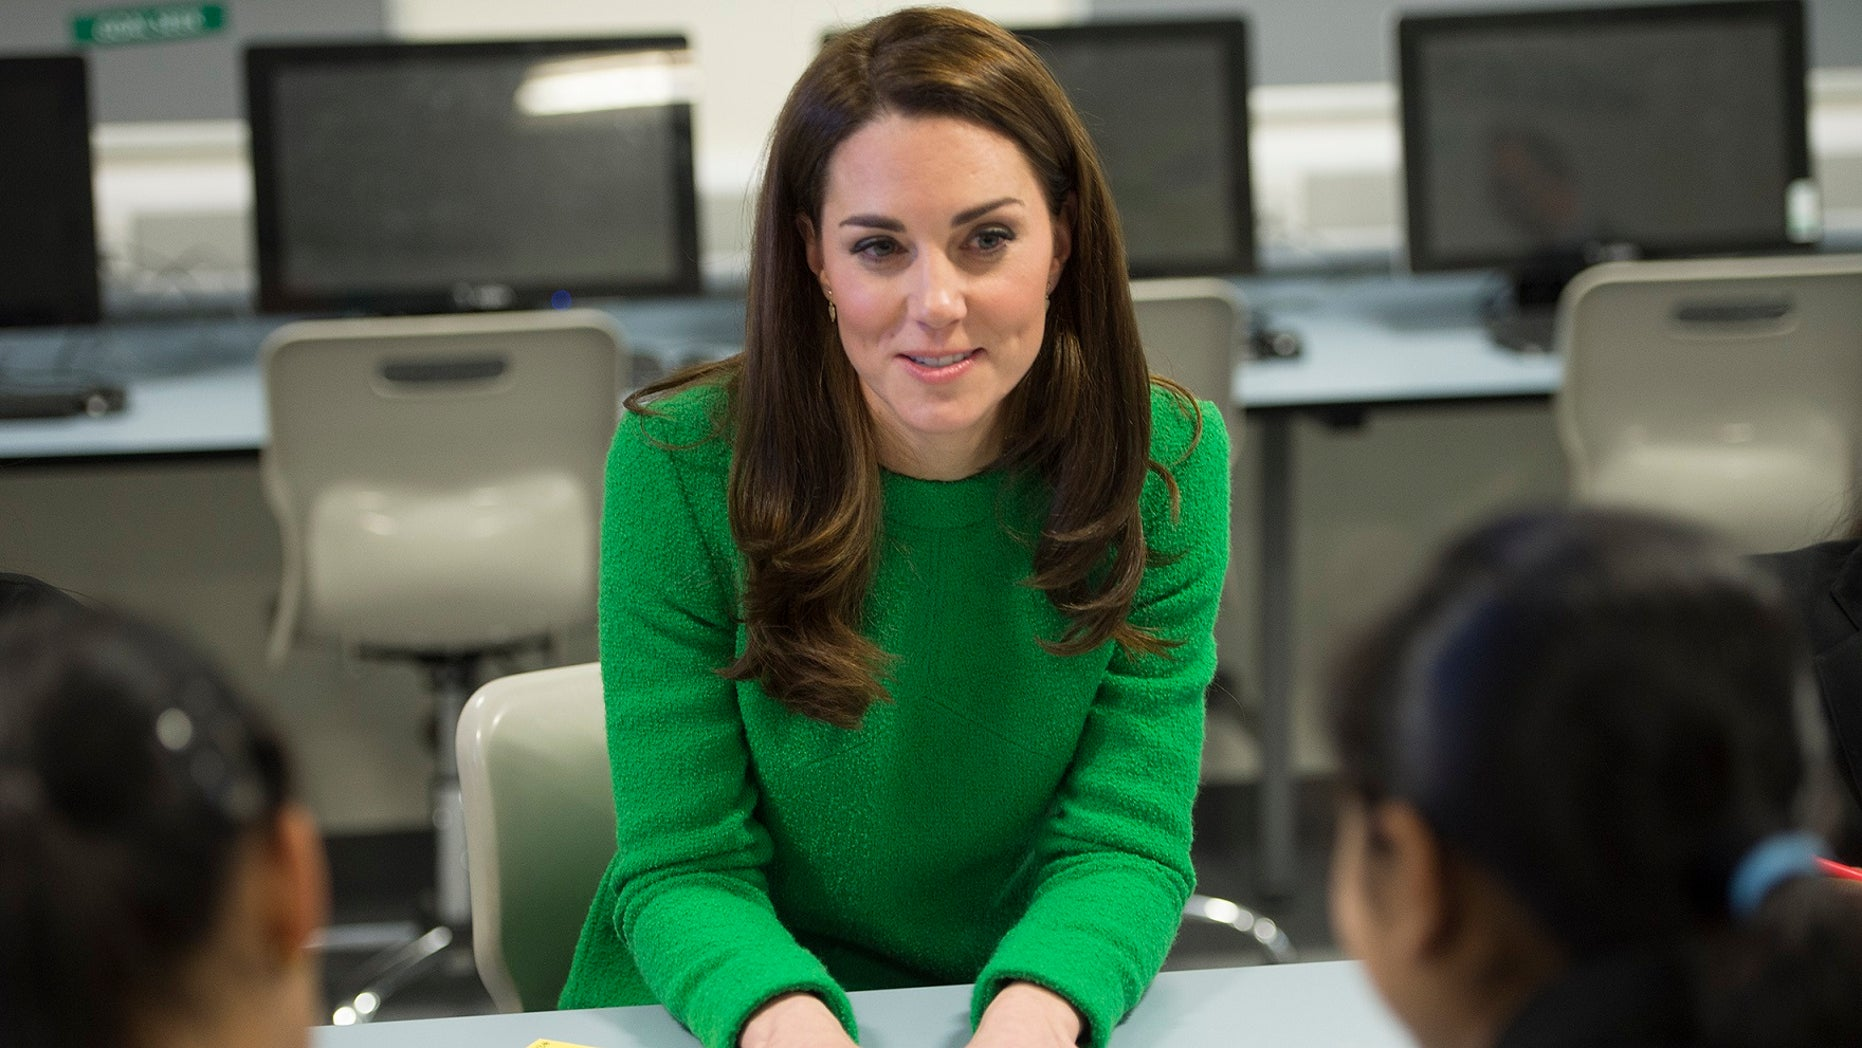 Britain's Kate, Duchess of Cambridge visits Alperton Community School in London, Tuesday Feb. 5, 2019.